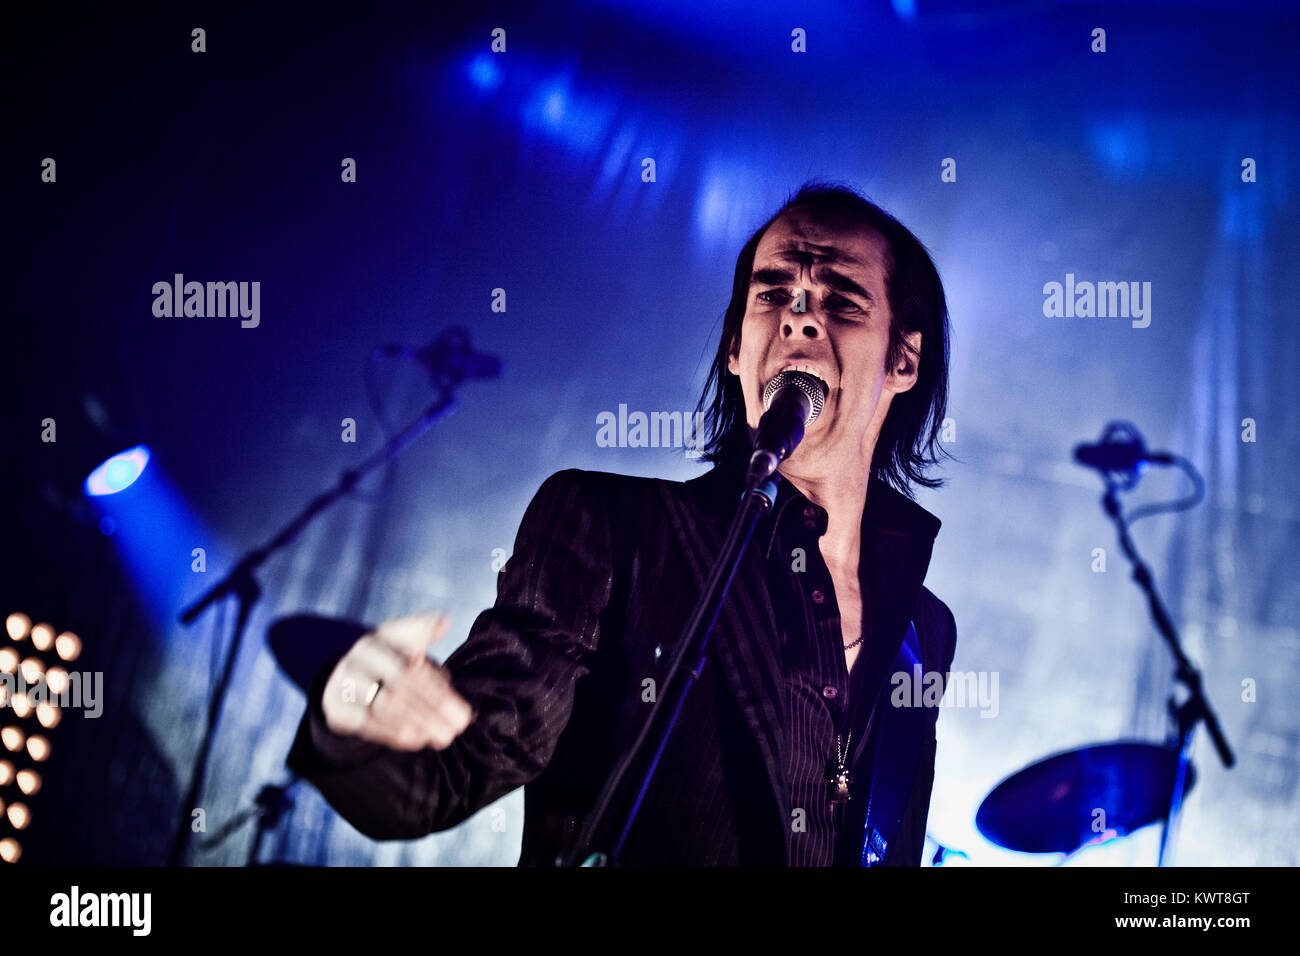 The alternative rock band Grinderman is here pictured with lead singer Nick Cave live on stage at a gig at Falconer Stock Photo